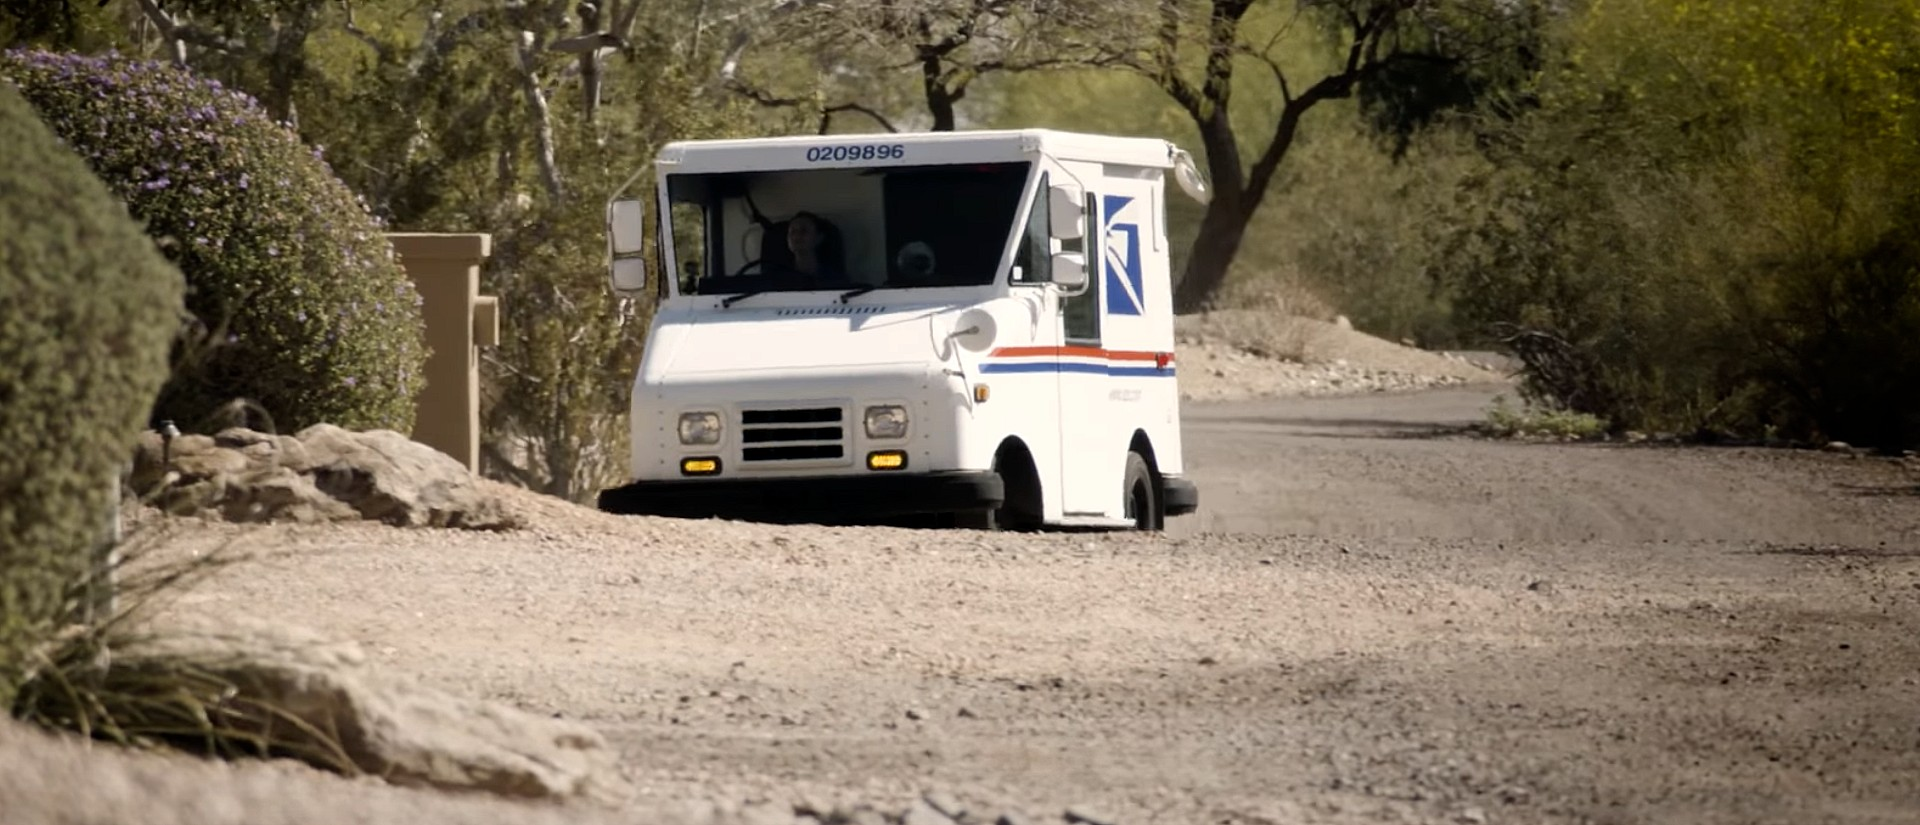 usps-delivery-vehicle